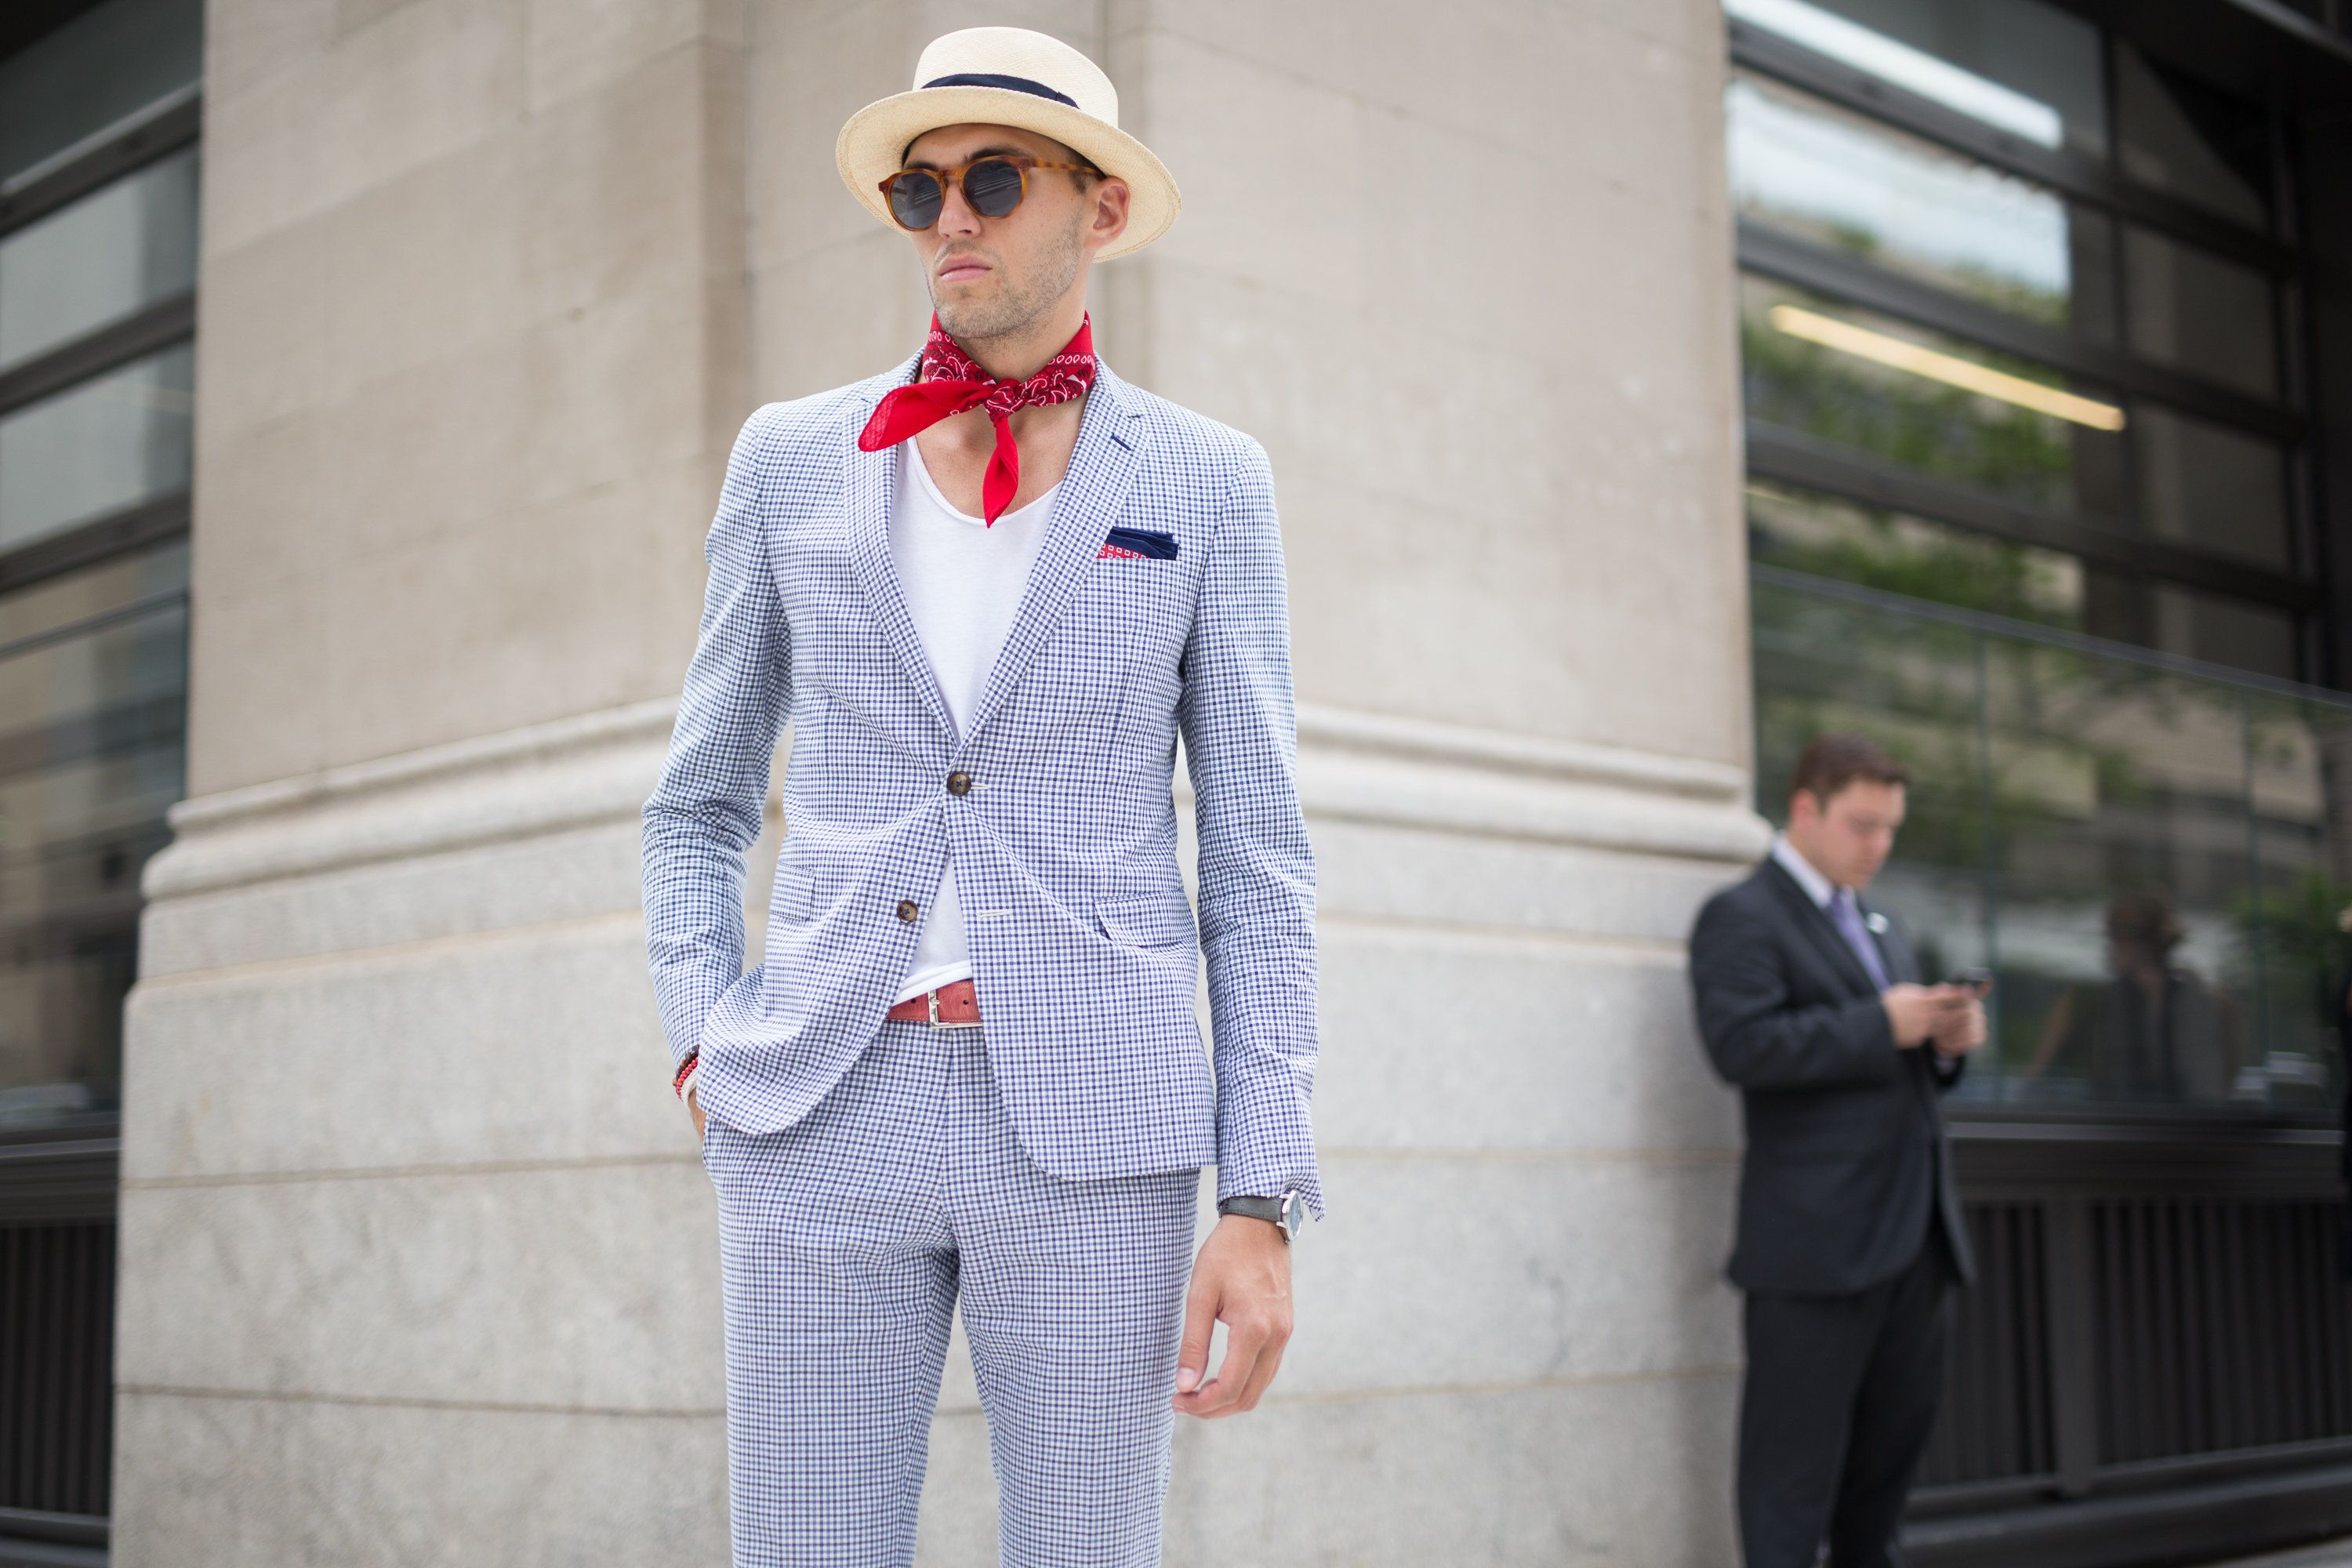 A man attends a presentation during New York Fashion Week: Men'swearing -- you guessed it! -- a neck scarf.